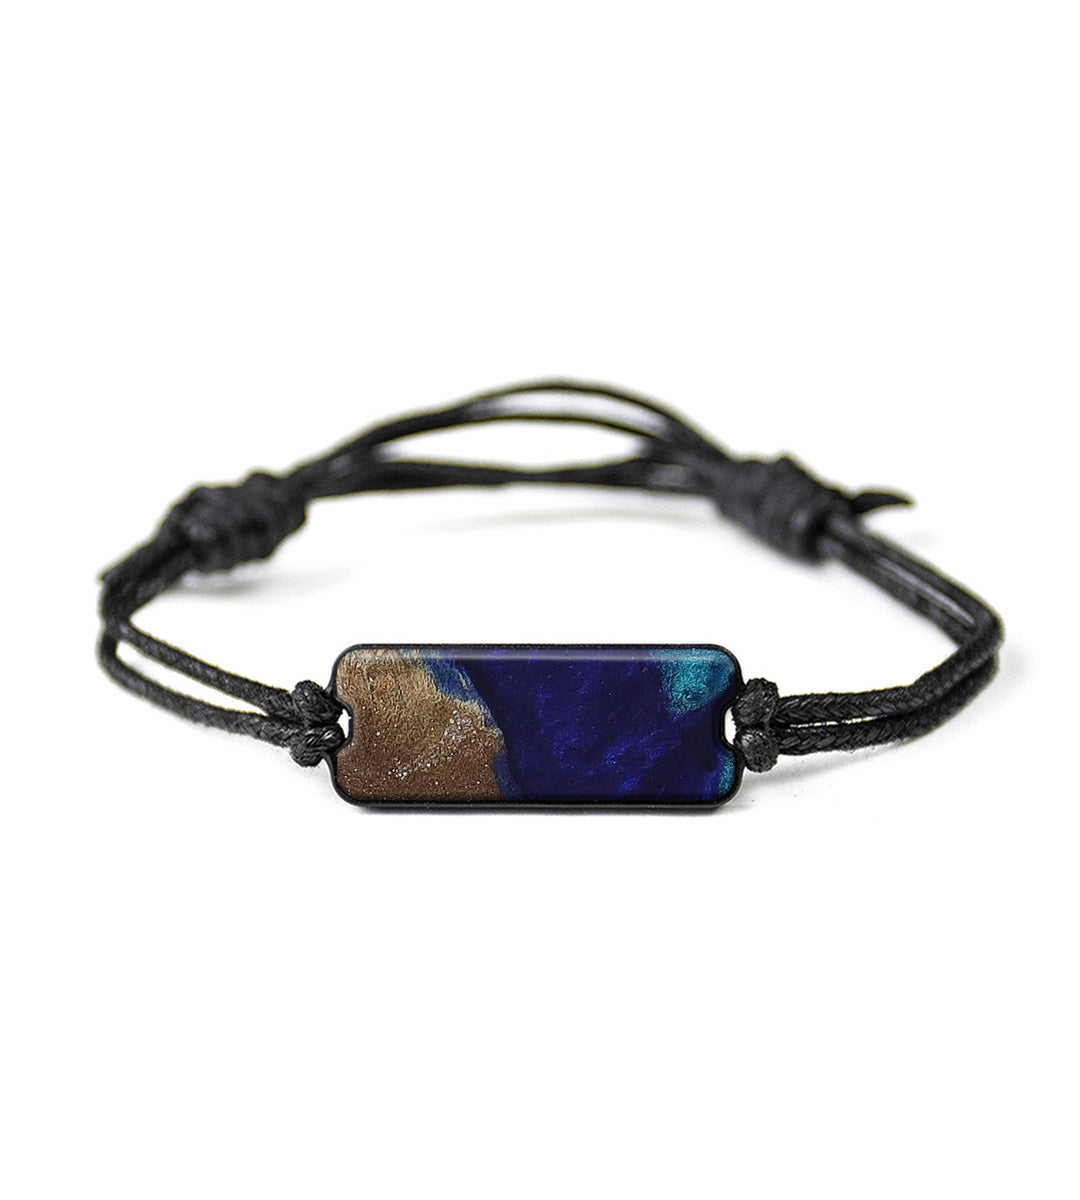 Classic Wood+Resin Bracelet - Josselyn (Dark Blue, 423097)